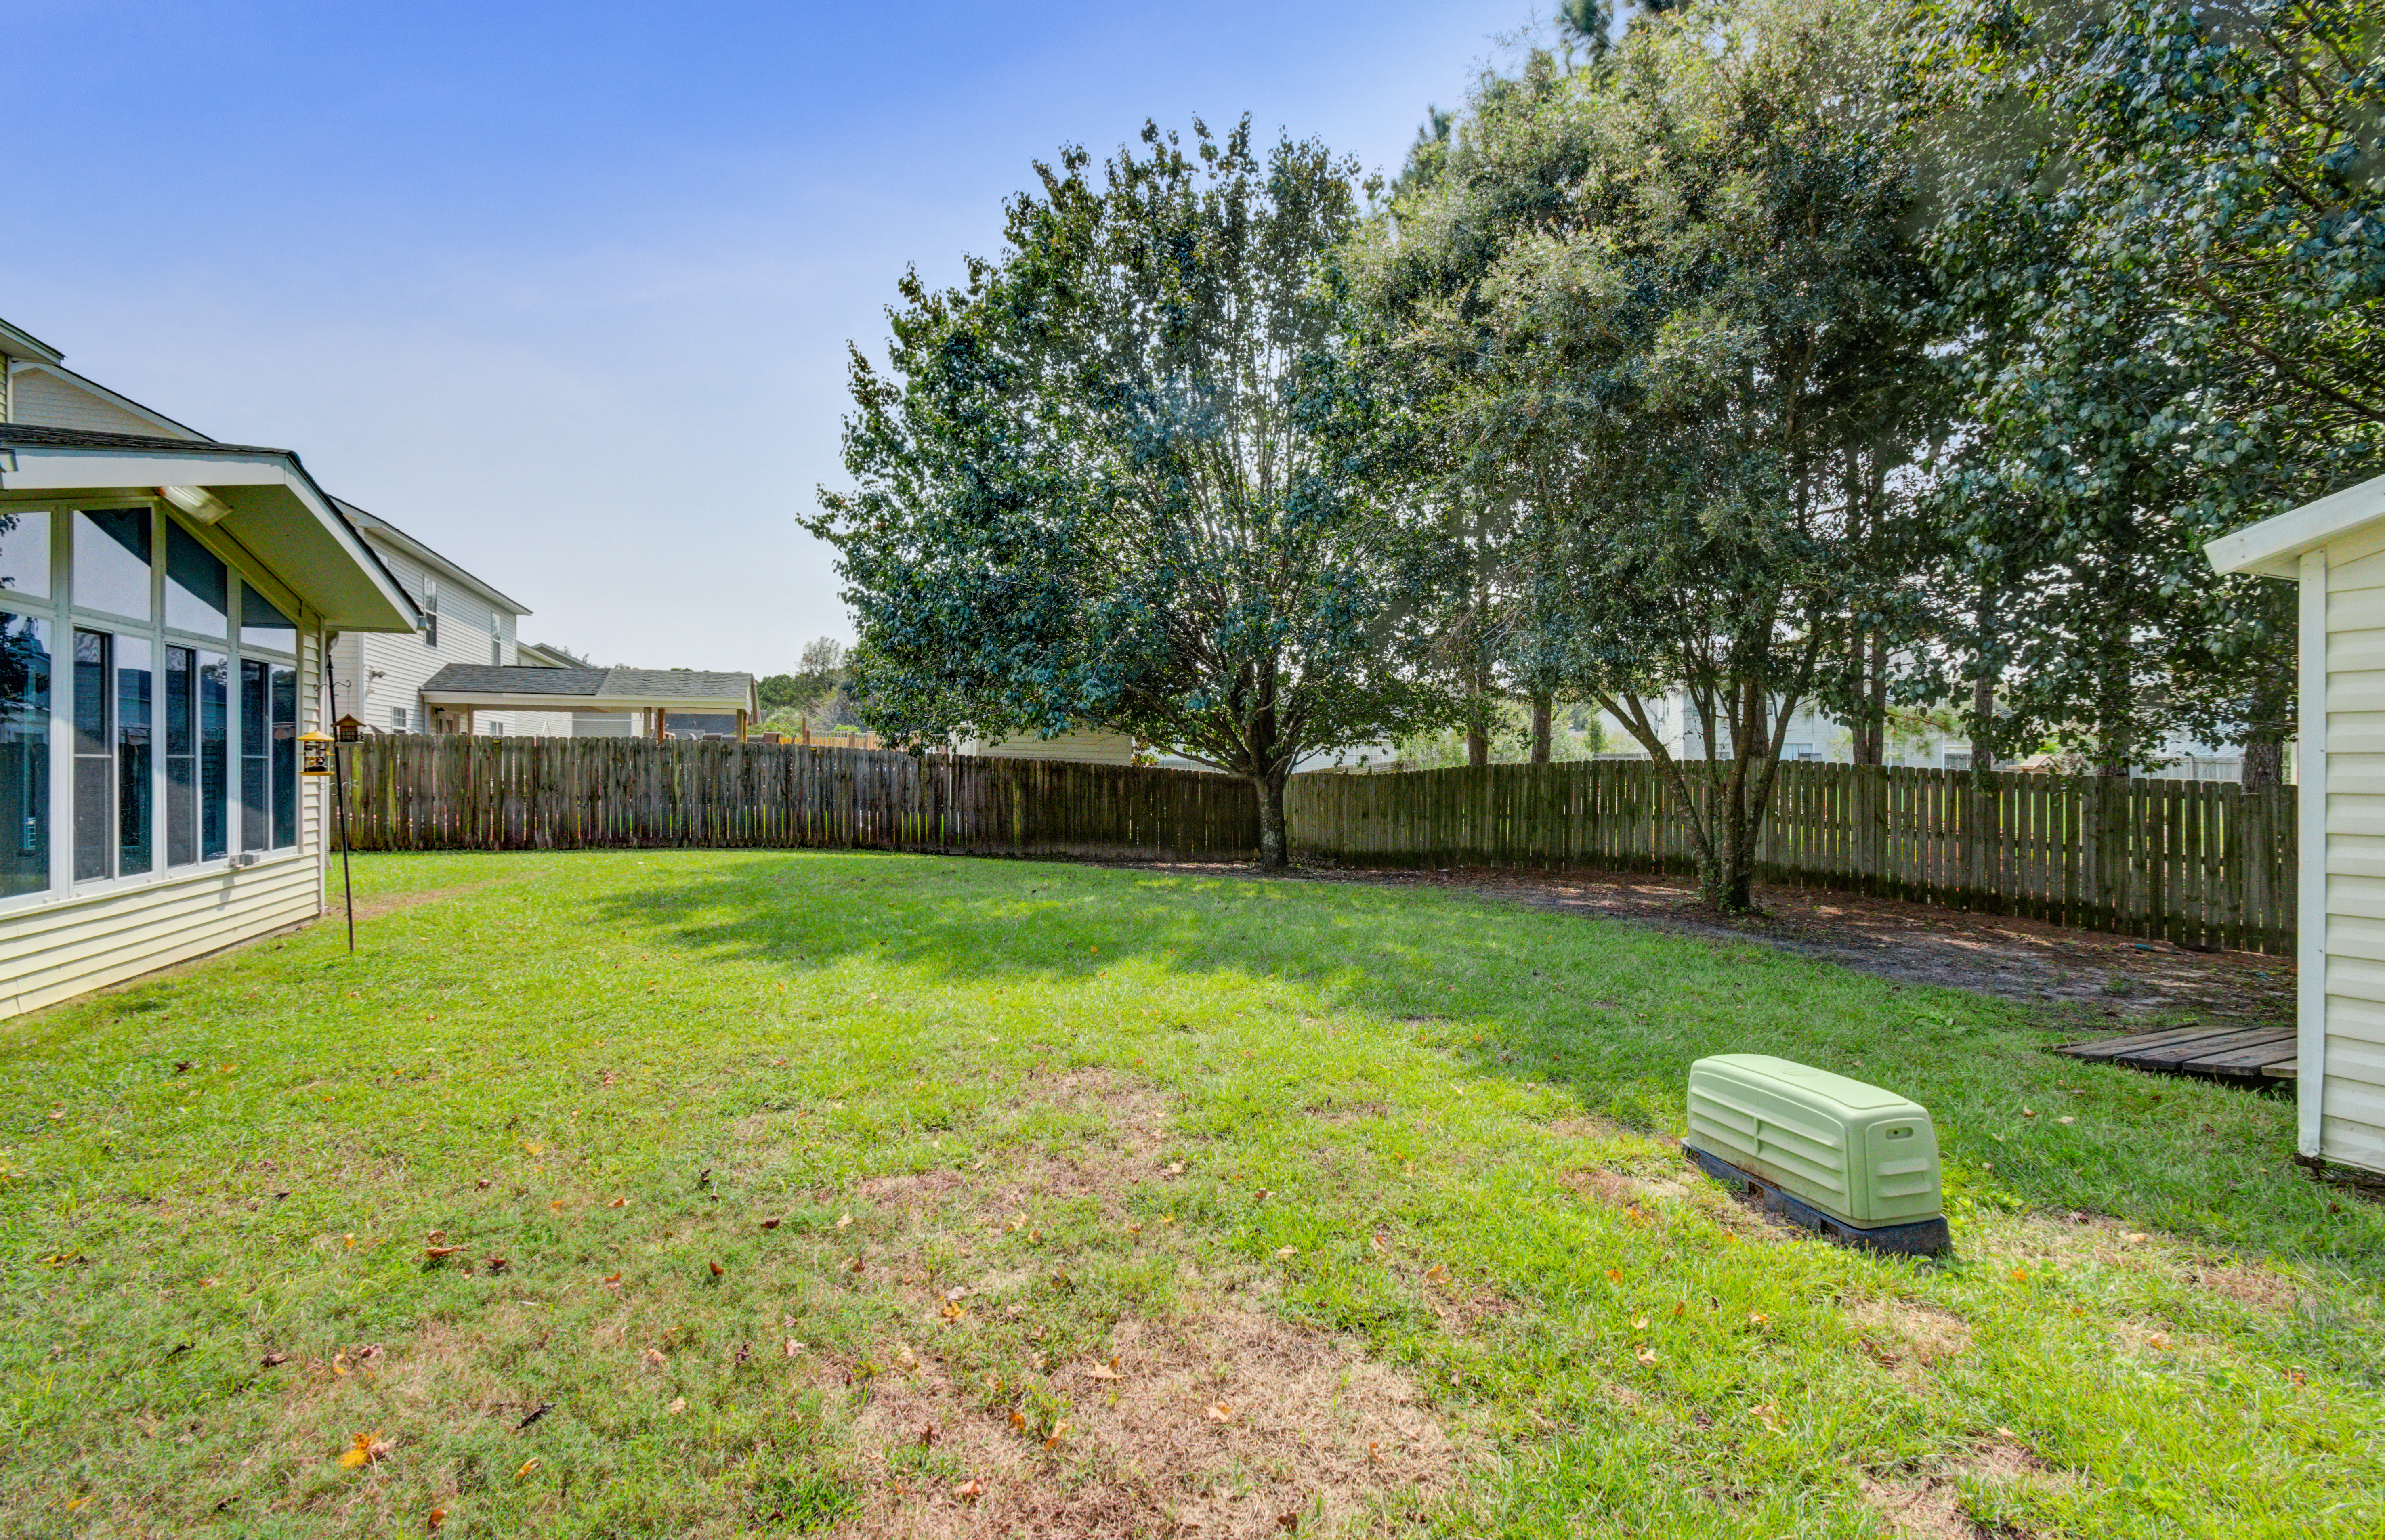 260 Tall Pines Rd Ladson SC 29456-3198 - Photo 26